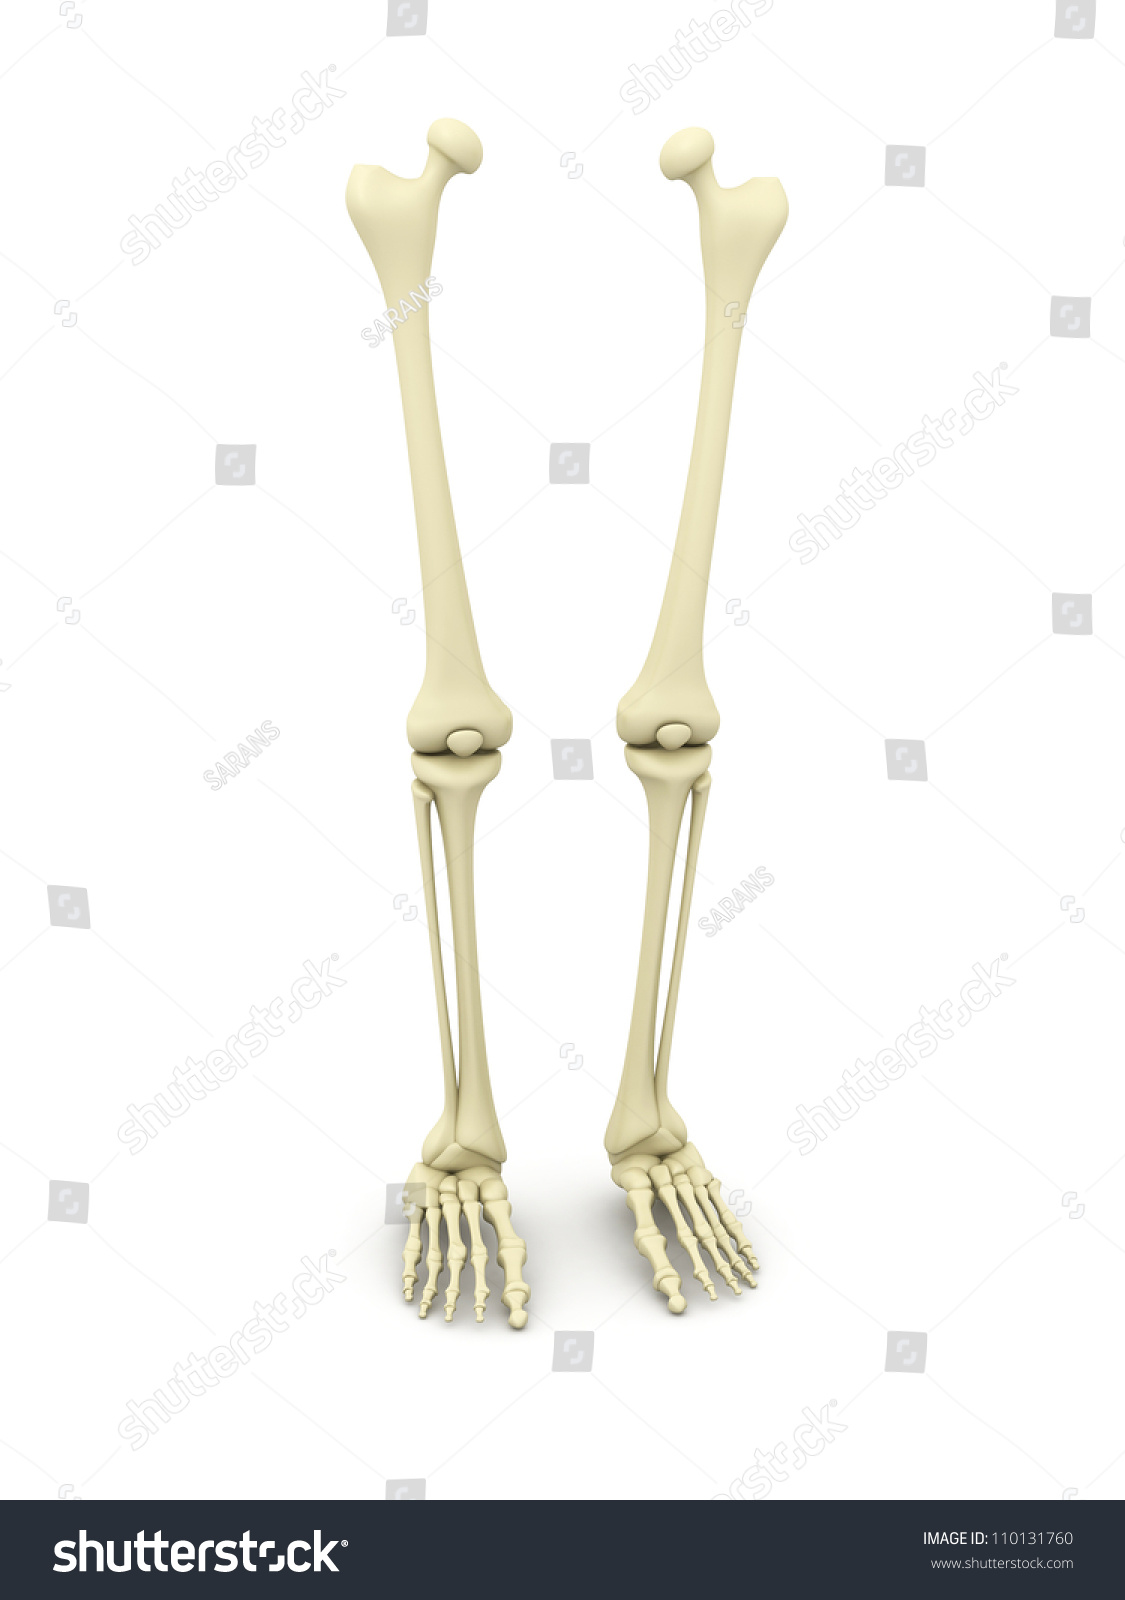 Royalty Free Stock Illustration Of 3 D Rendered Human Leg Bone Stock